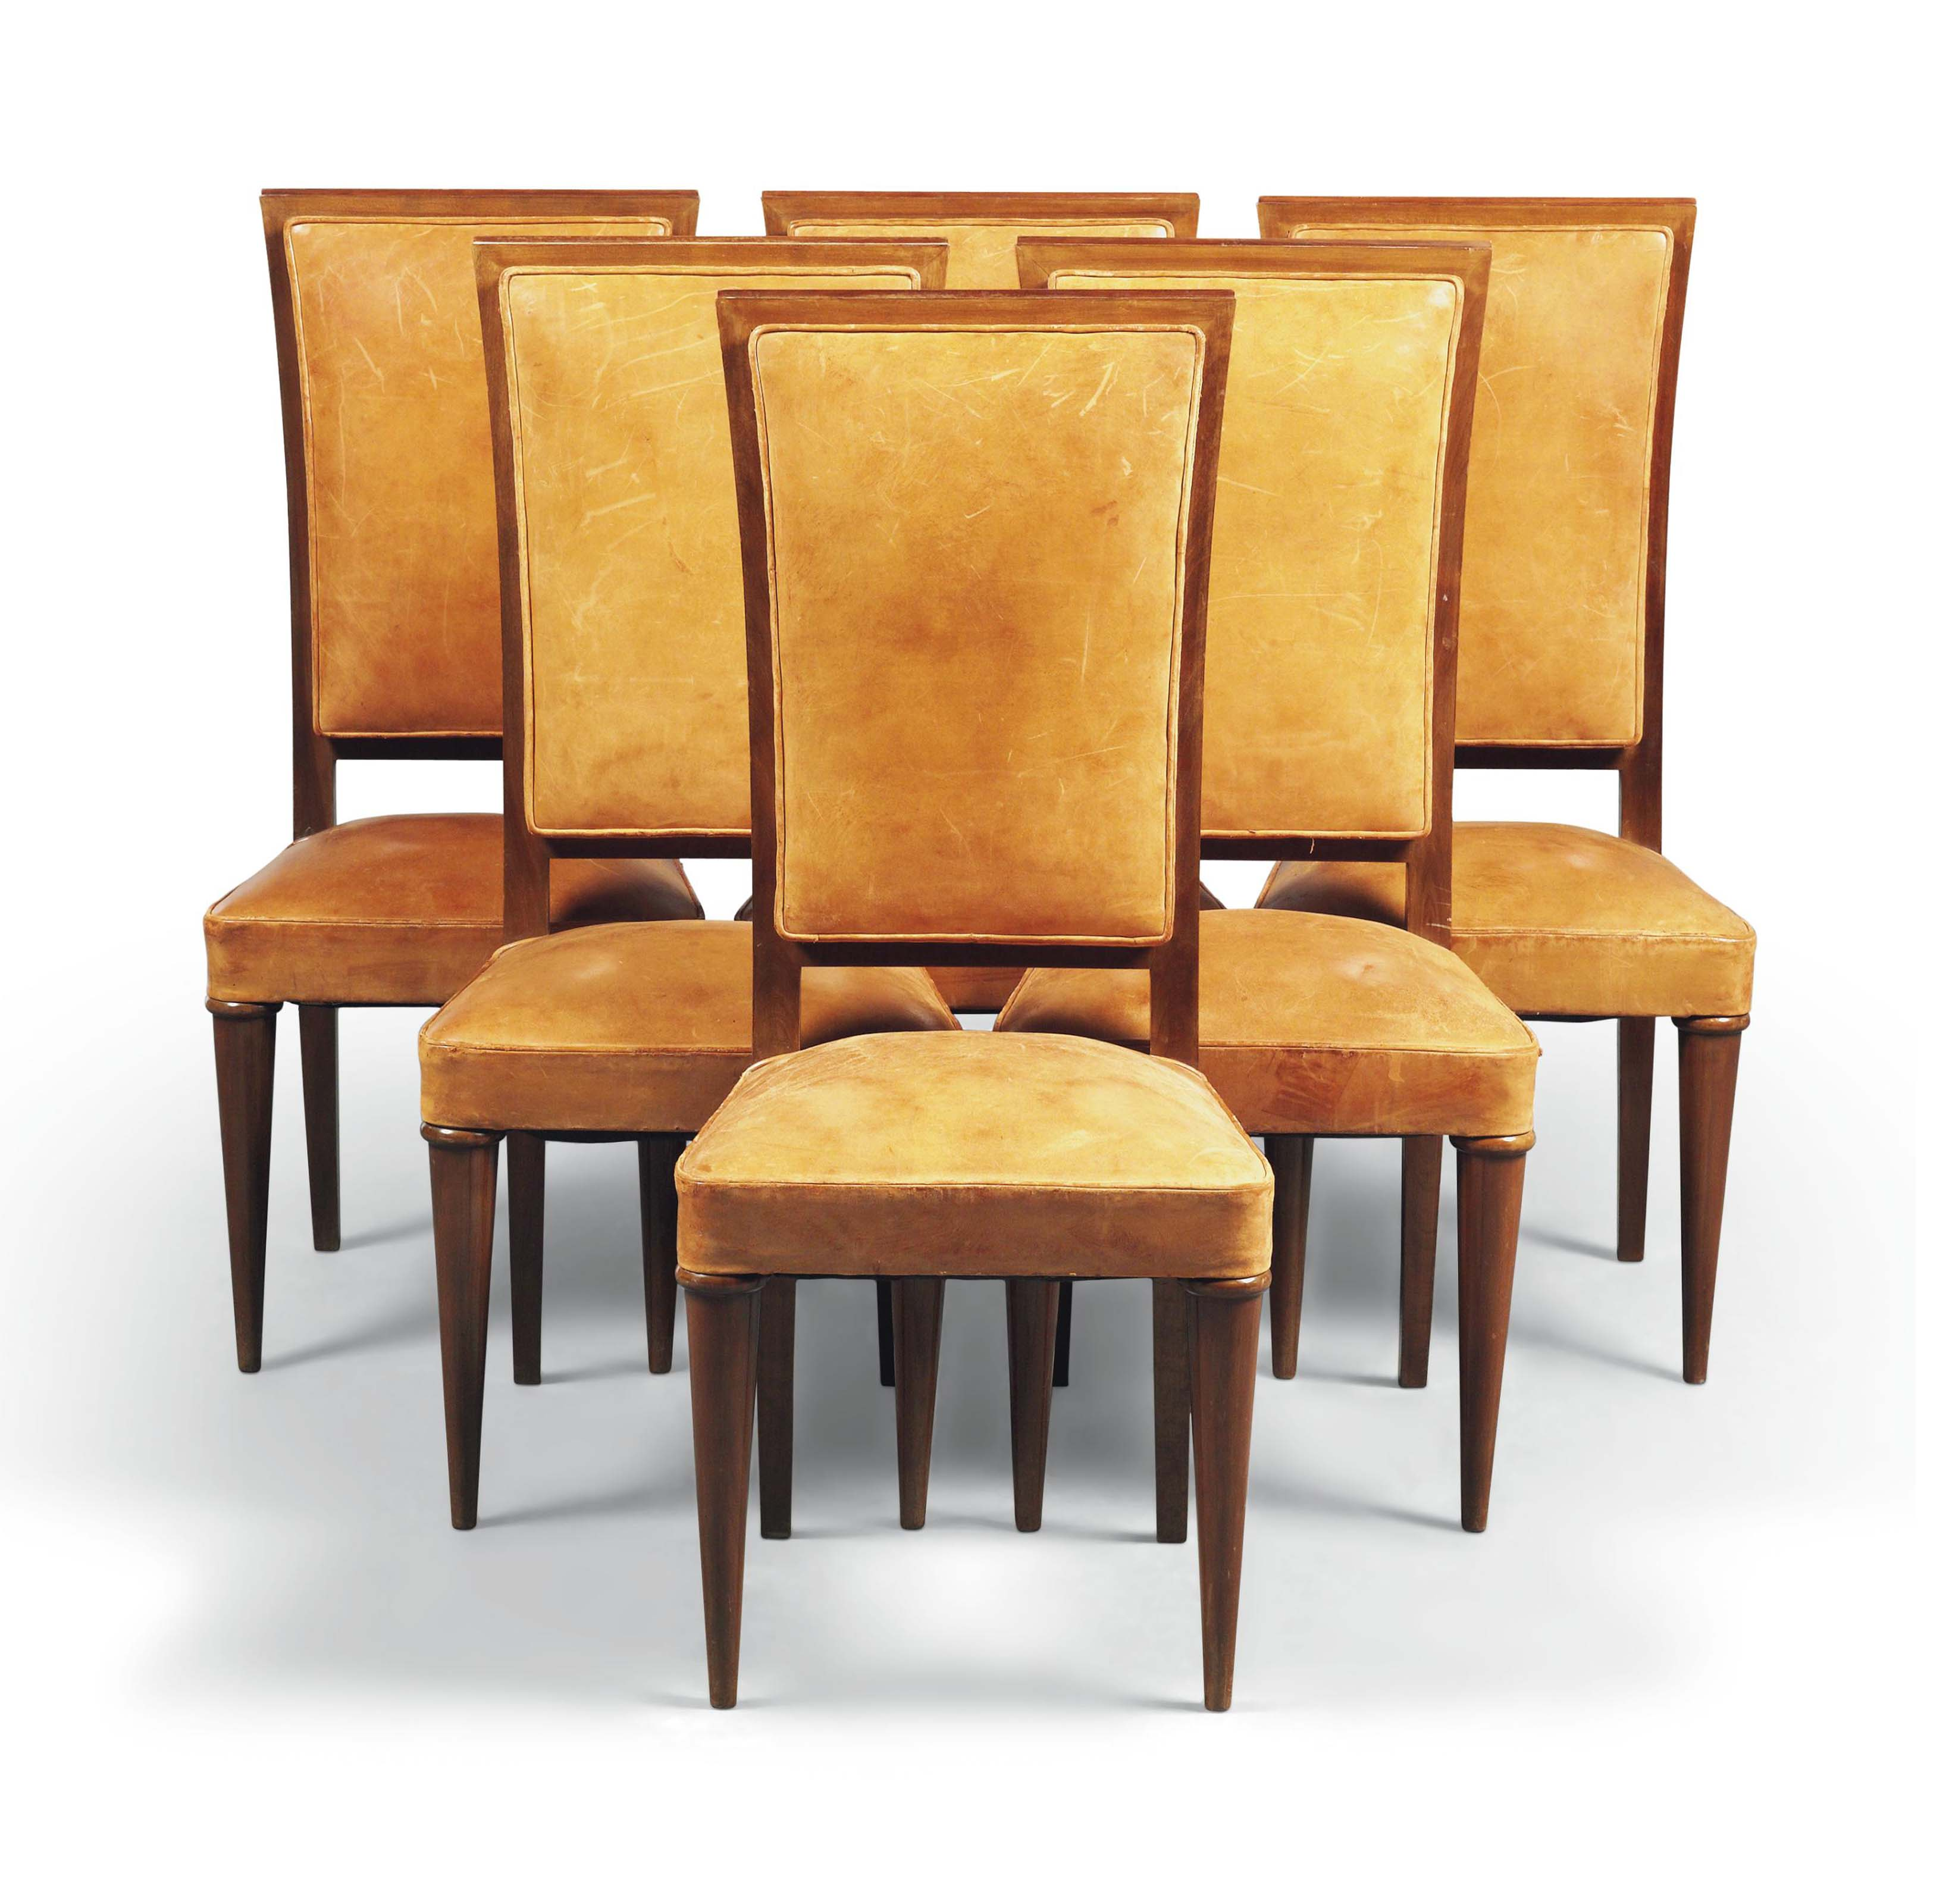 A SET OF SIX FRUITWOOD CHAIRS